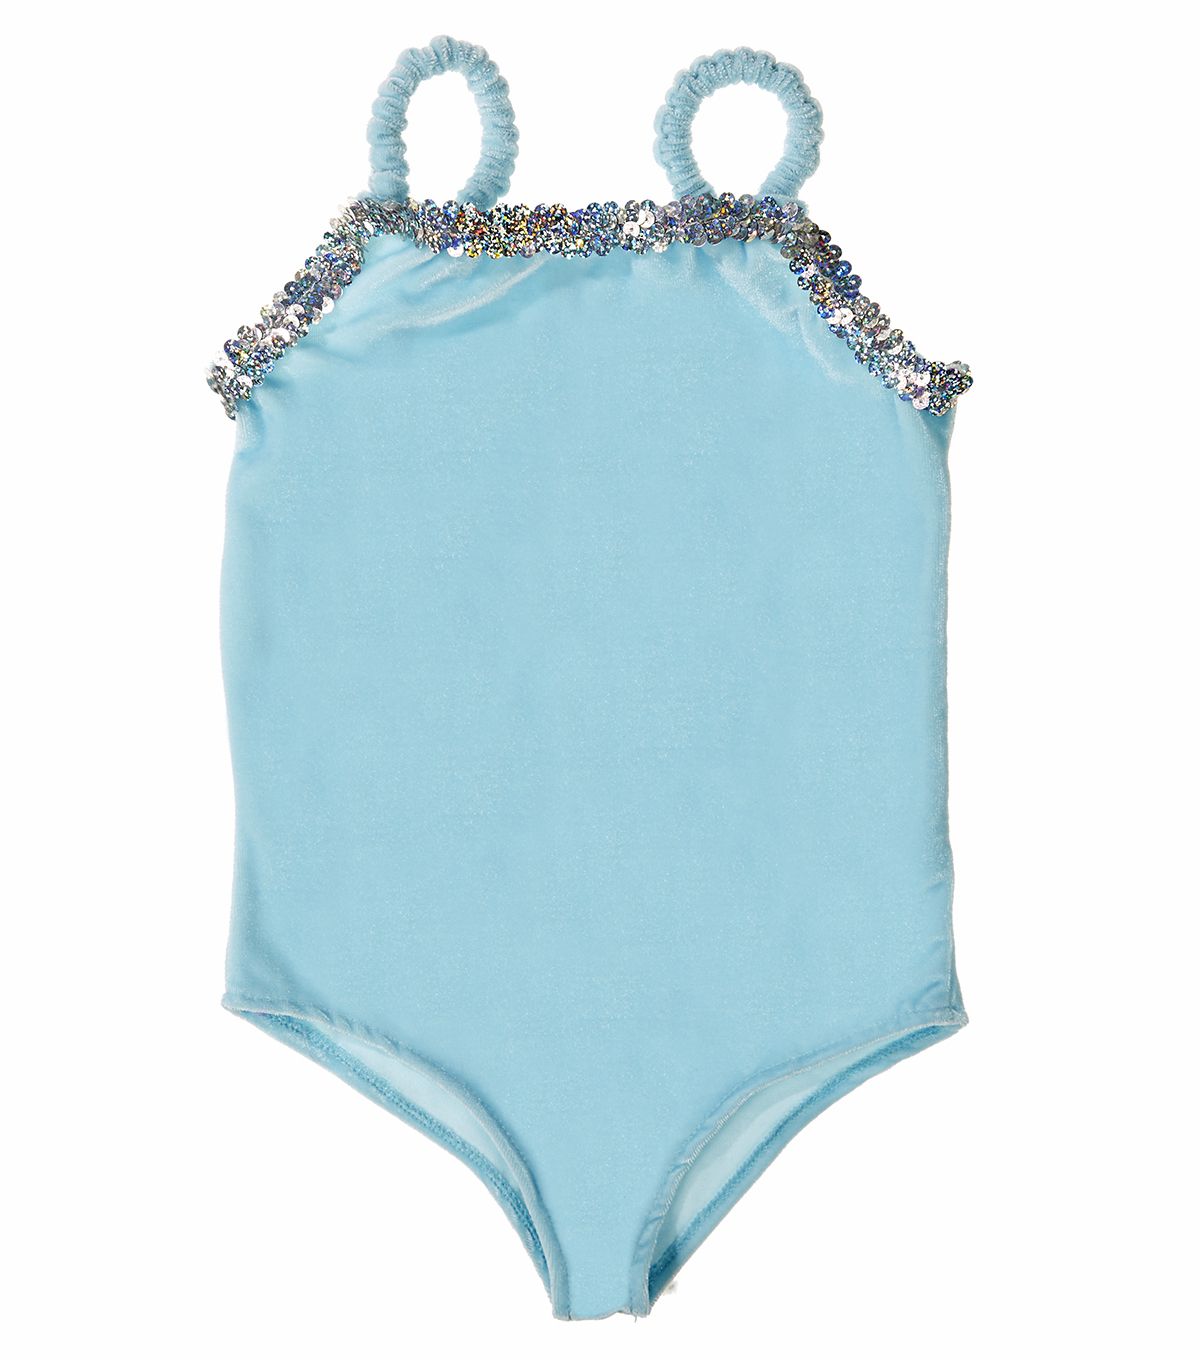 Fashion & Fluff™ Leotard Light Blue